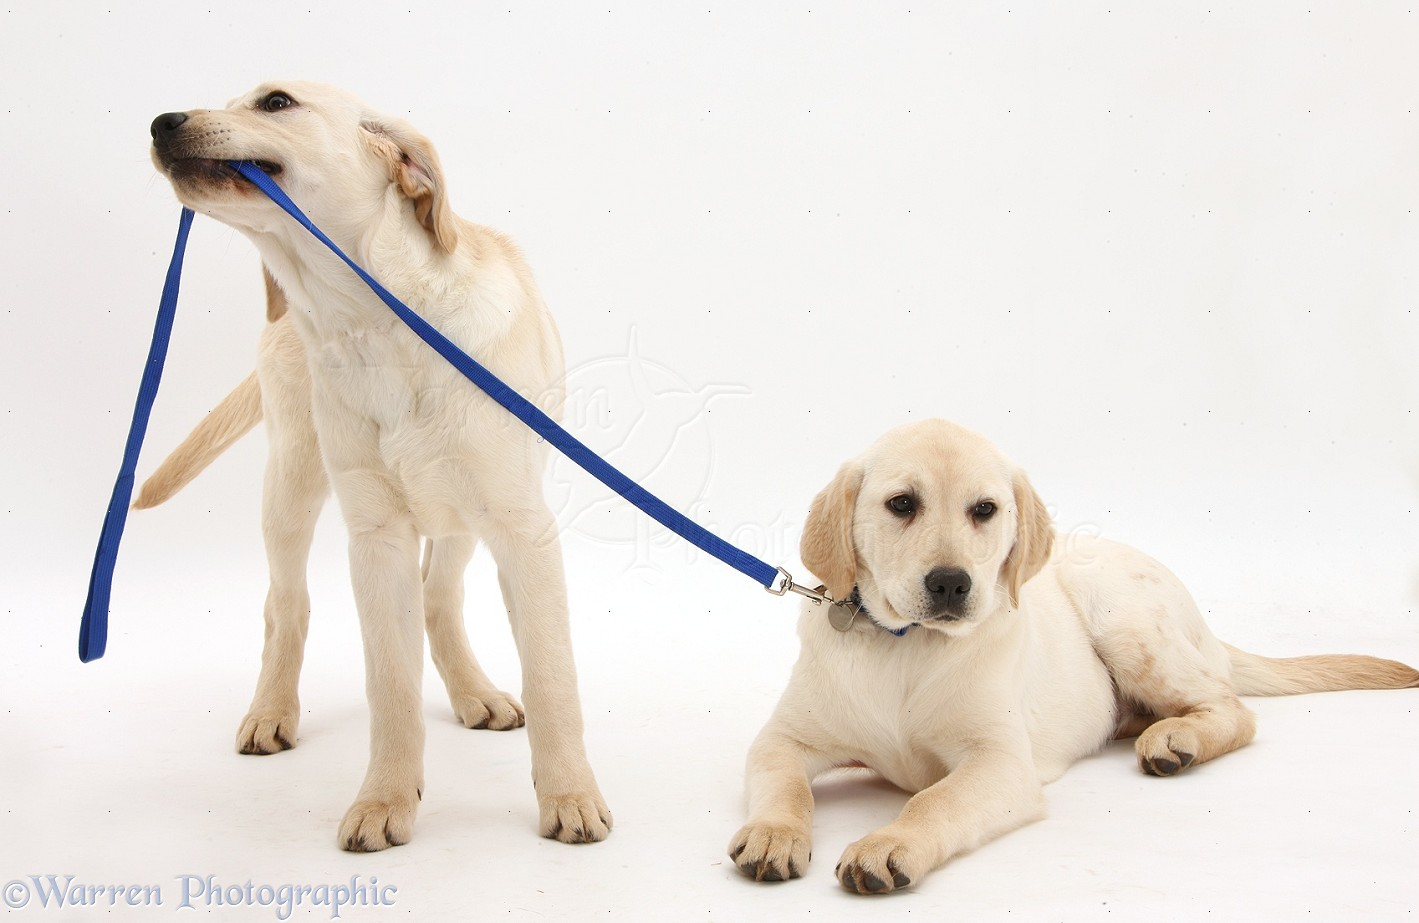 Dogs Yellow Labrador Retriever Pups 4 Months Old Photo Wp36172